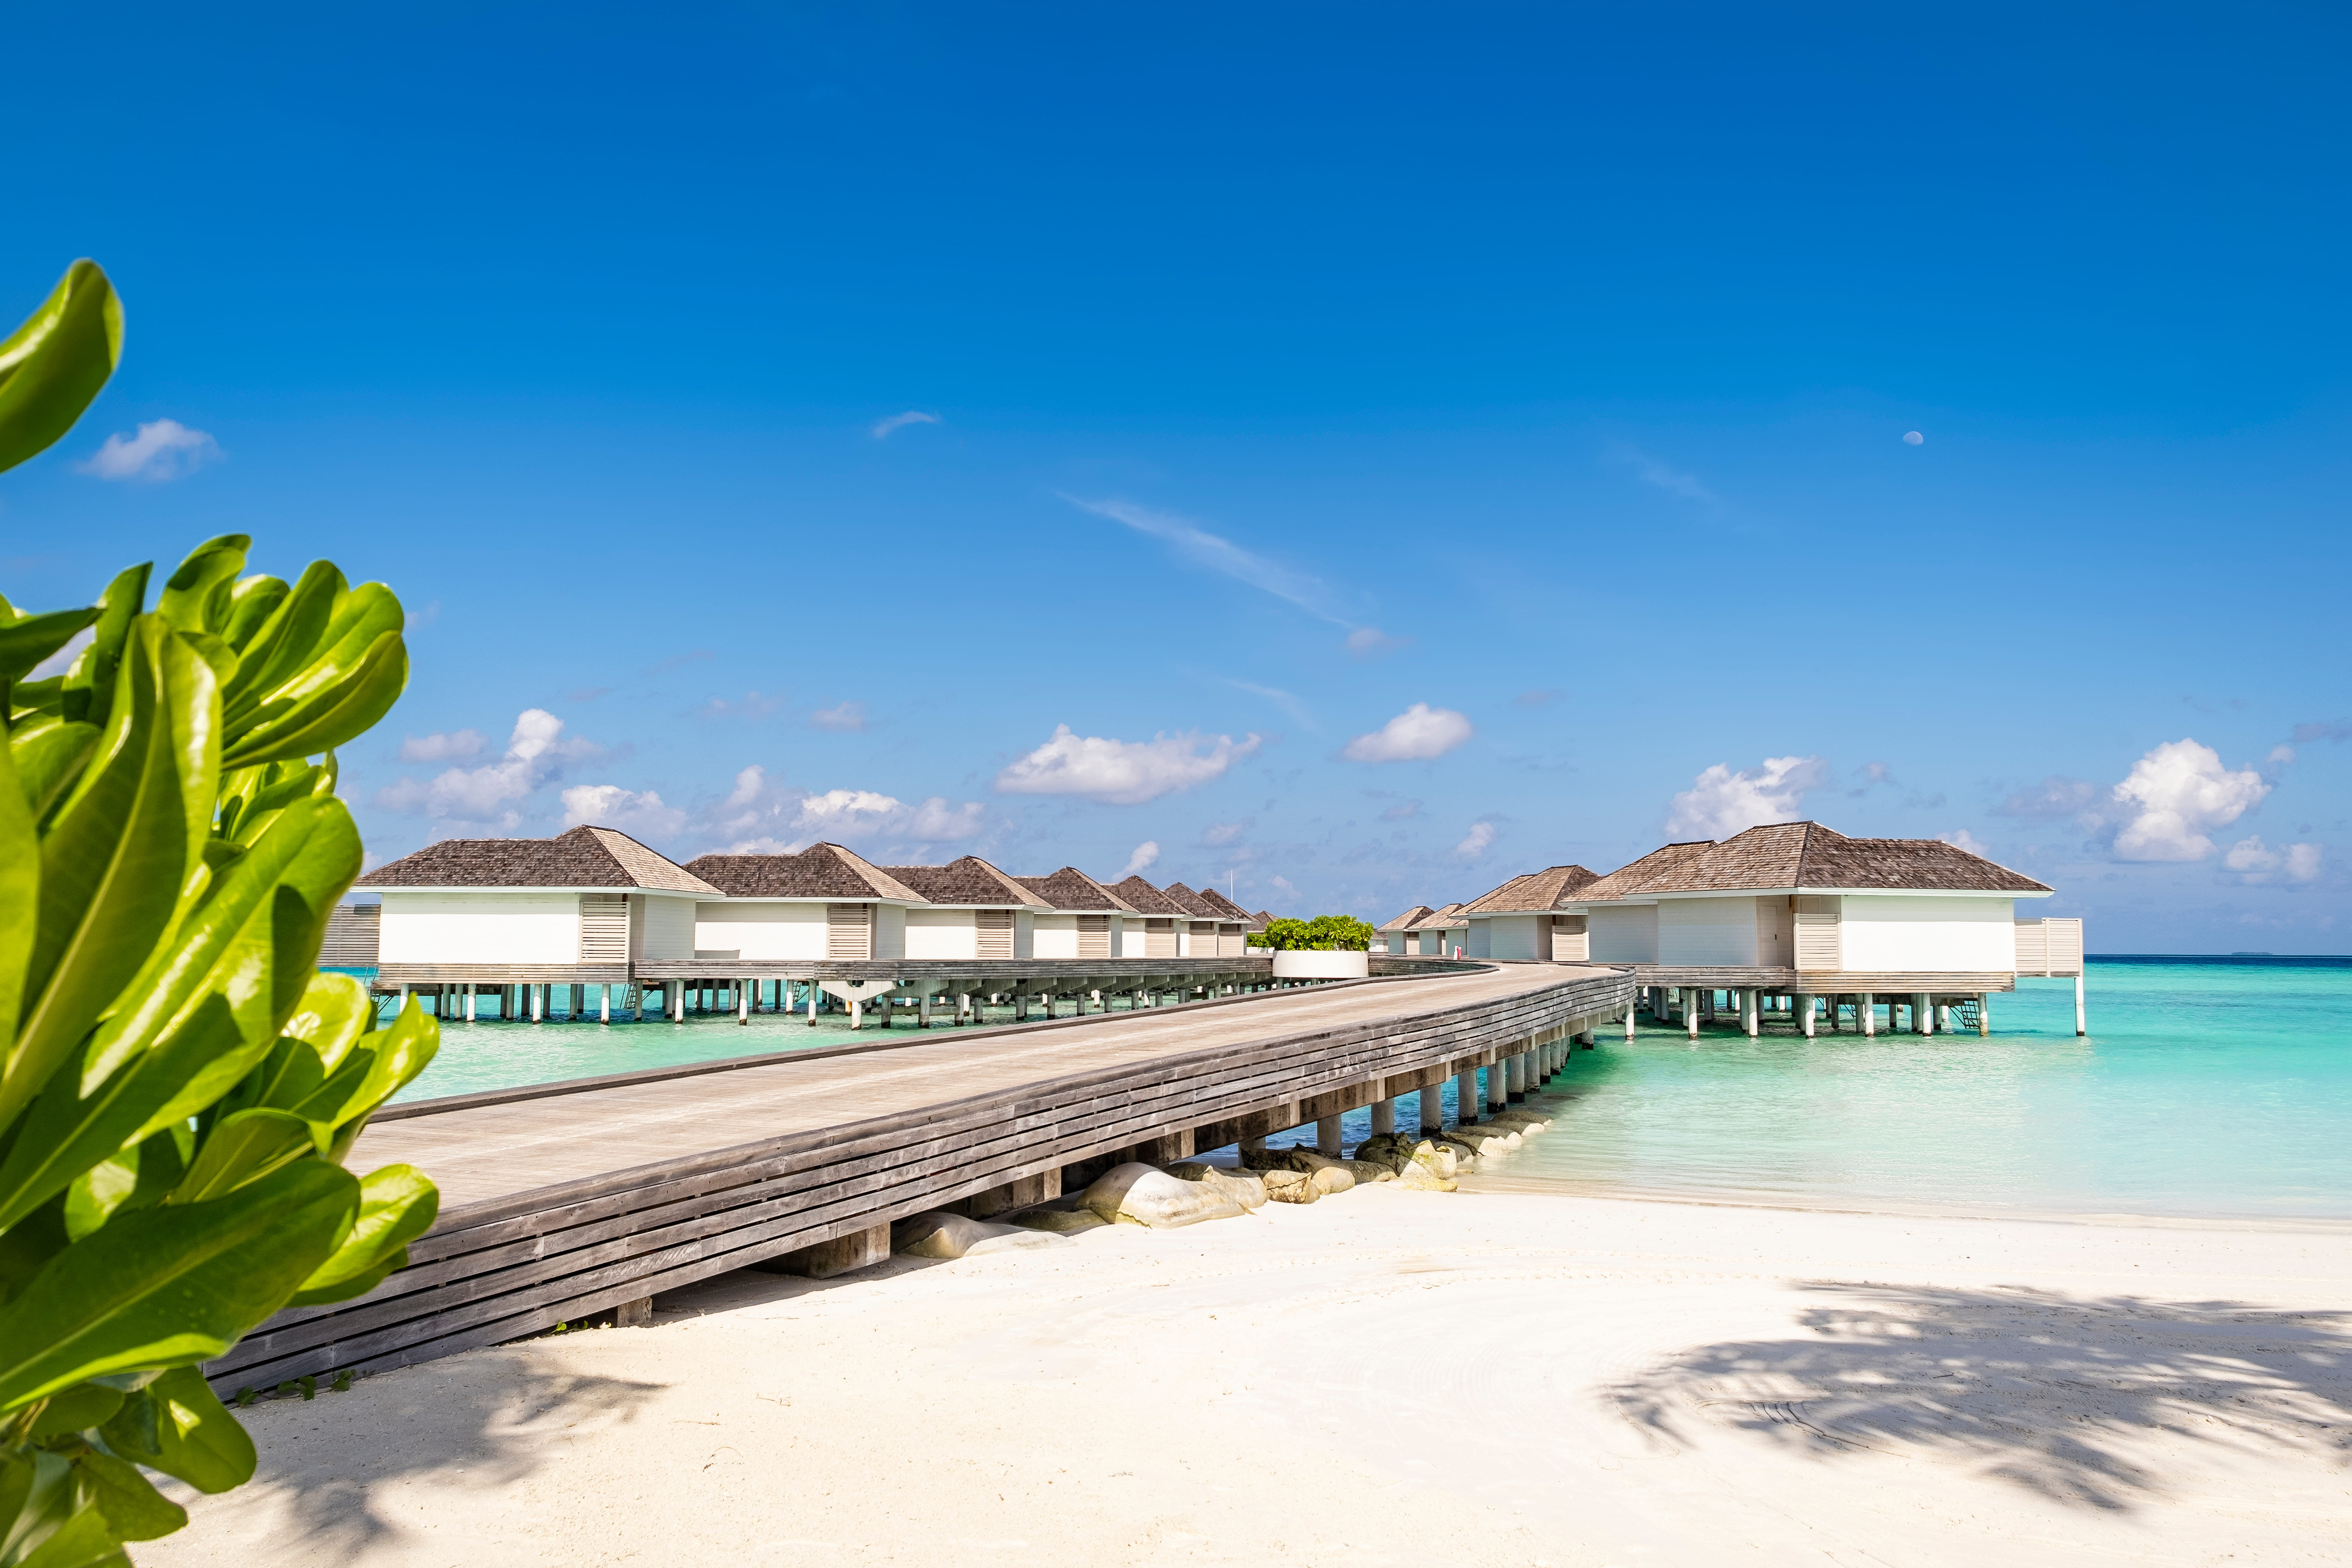 Bright Blue Sky and the Crystal Clear Sea Water of Maldives